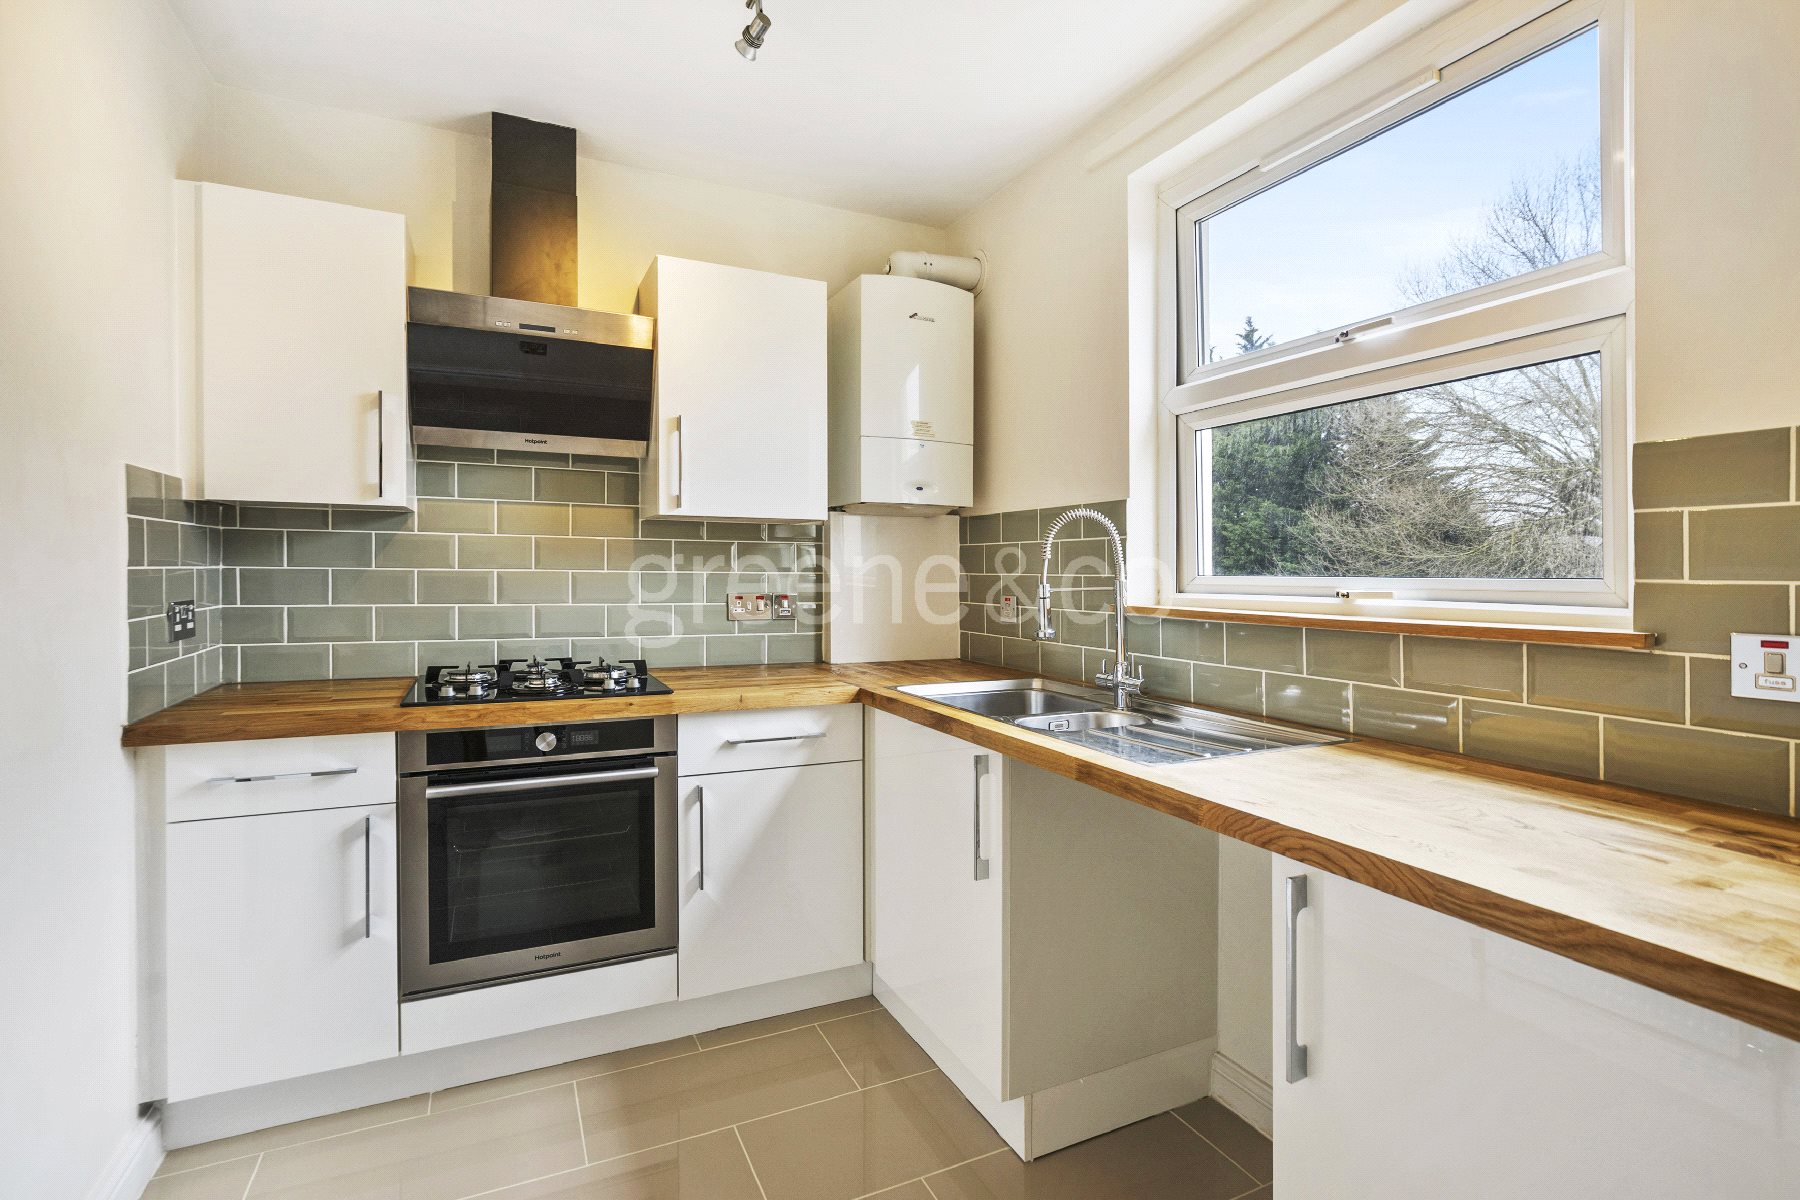 1 Bedroom Flat for sale in Kilburn Park Road, Maida Vale, London, NW6